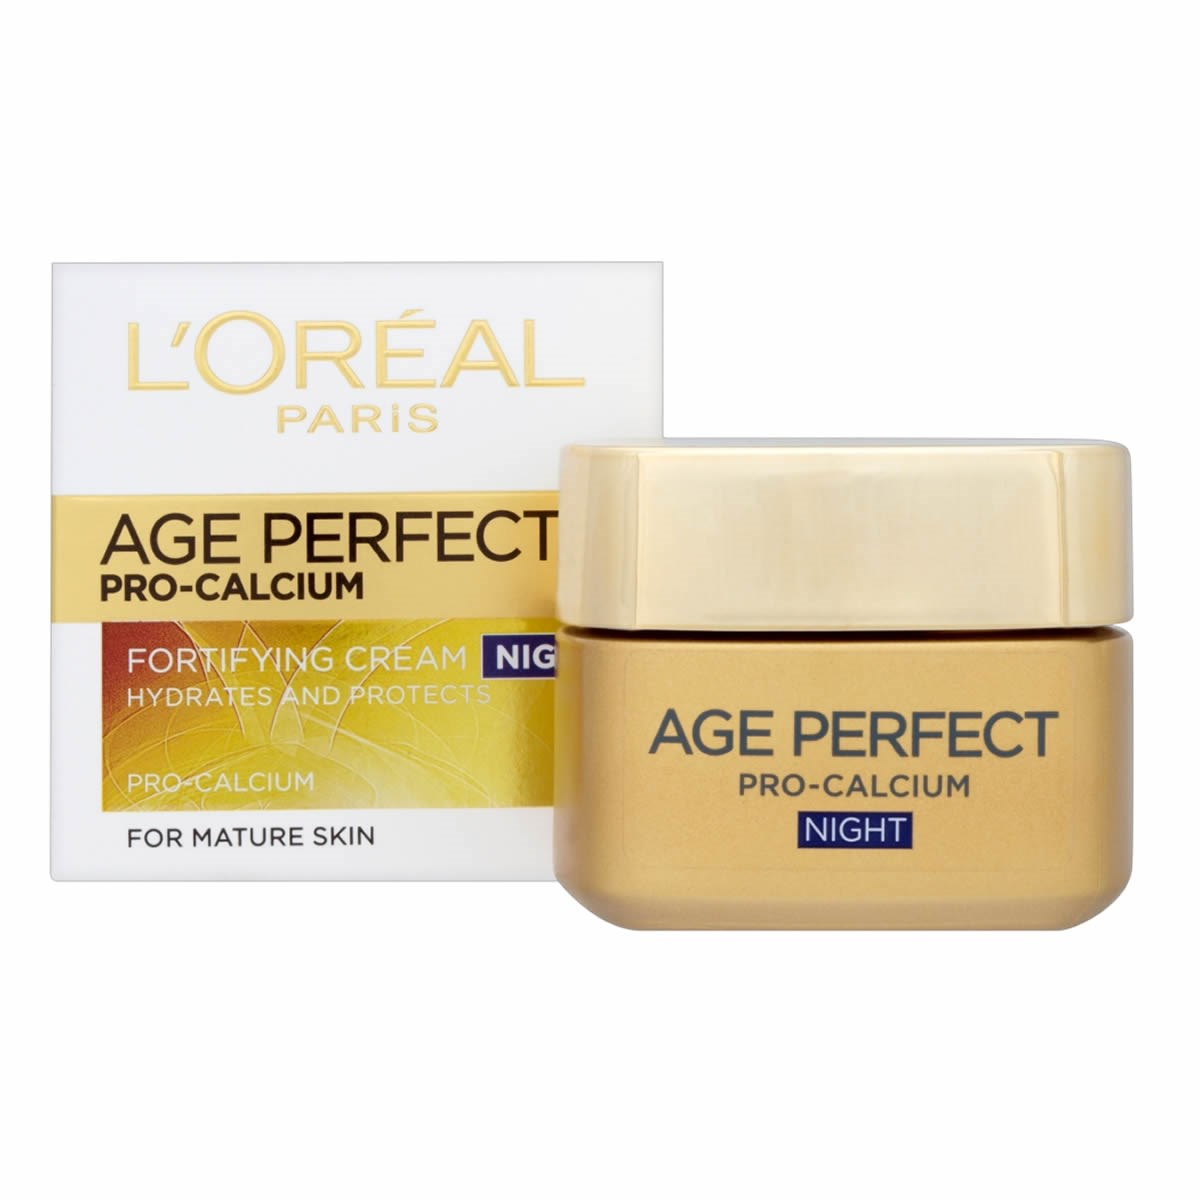 L'Oreal Paris Age Perfect Pro-Calcium Fortifying Night Cream